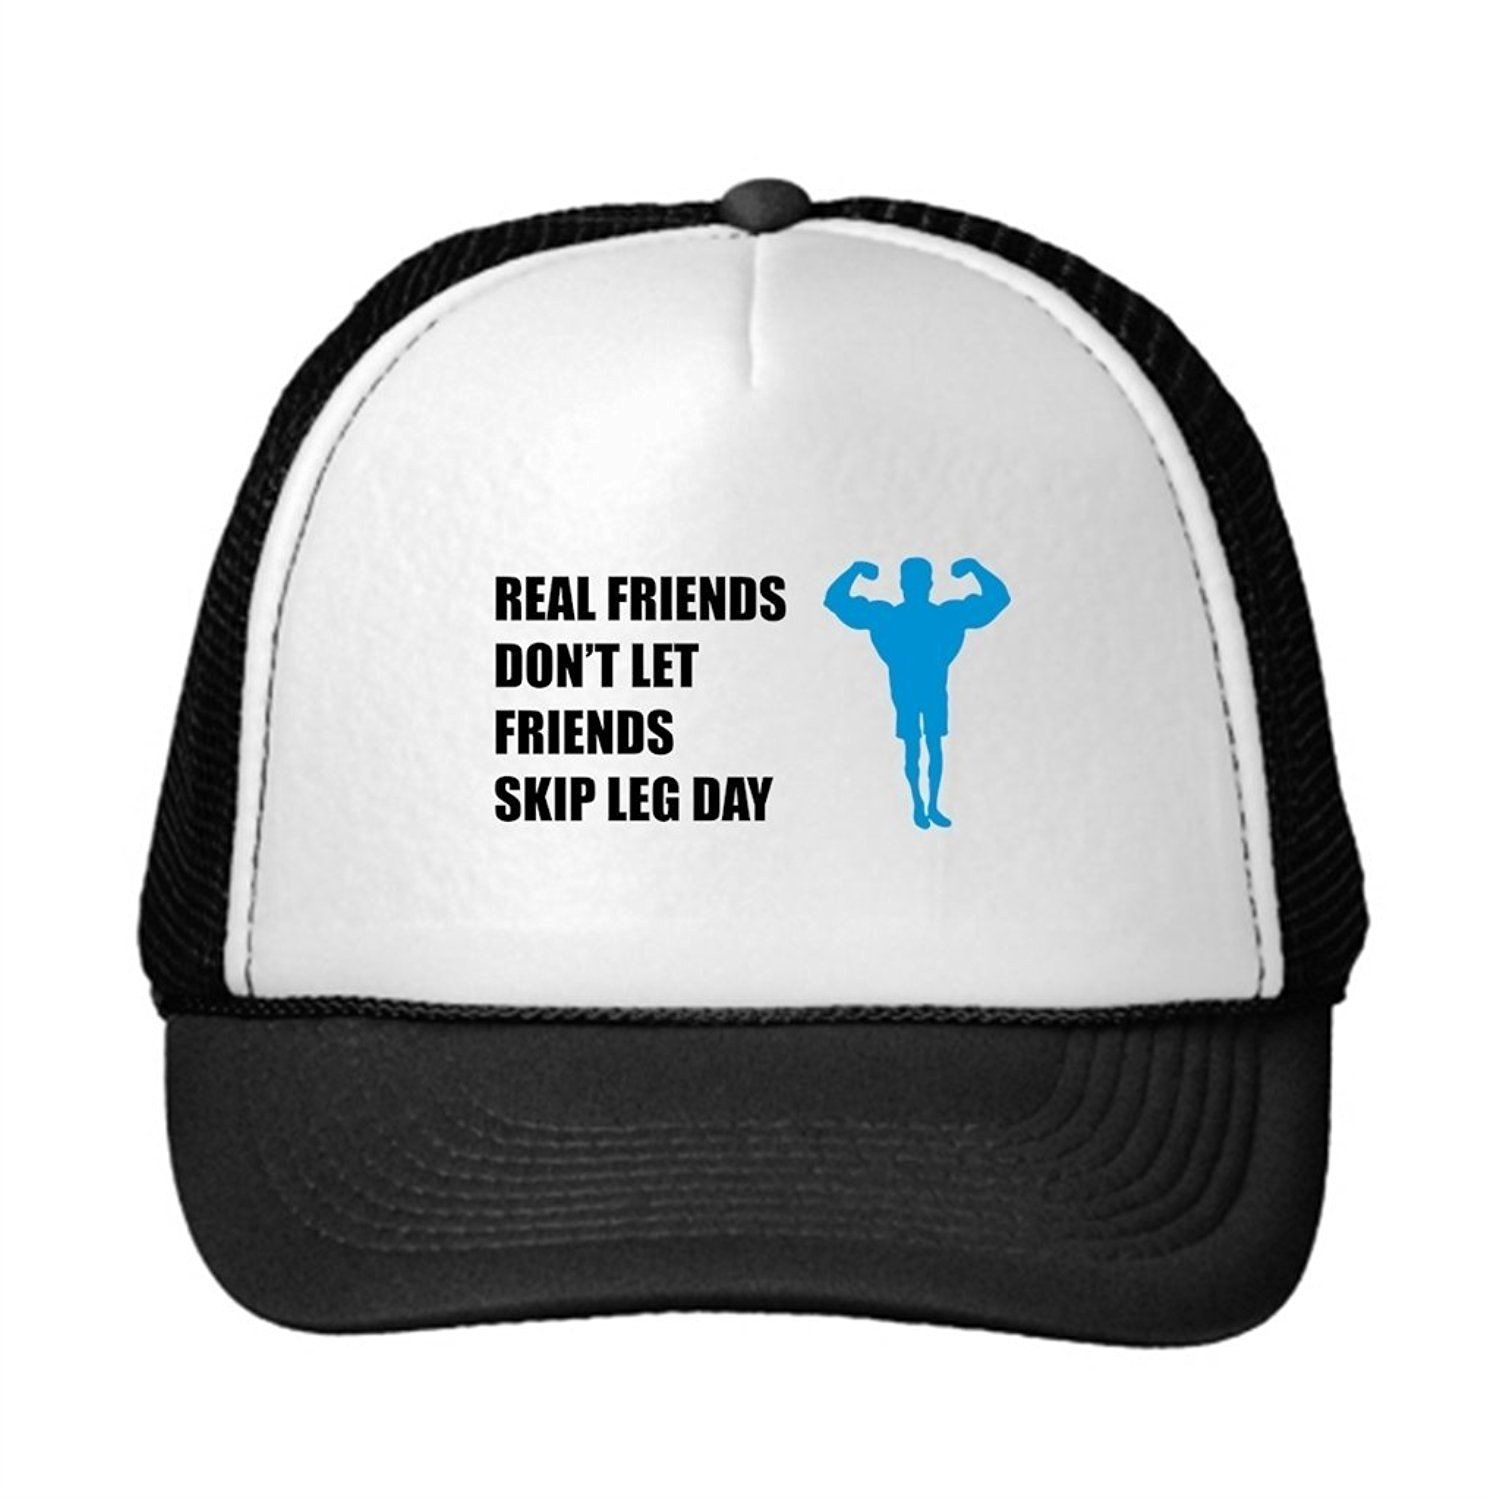 3f96b81e21029 Get Quotations · YAPADD Awesome Trucker Hats Real Friends Dont Let Friends  Skip Leg Day Cool Snapback Hats